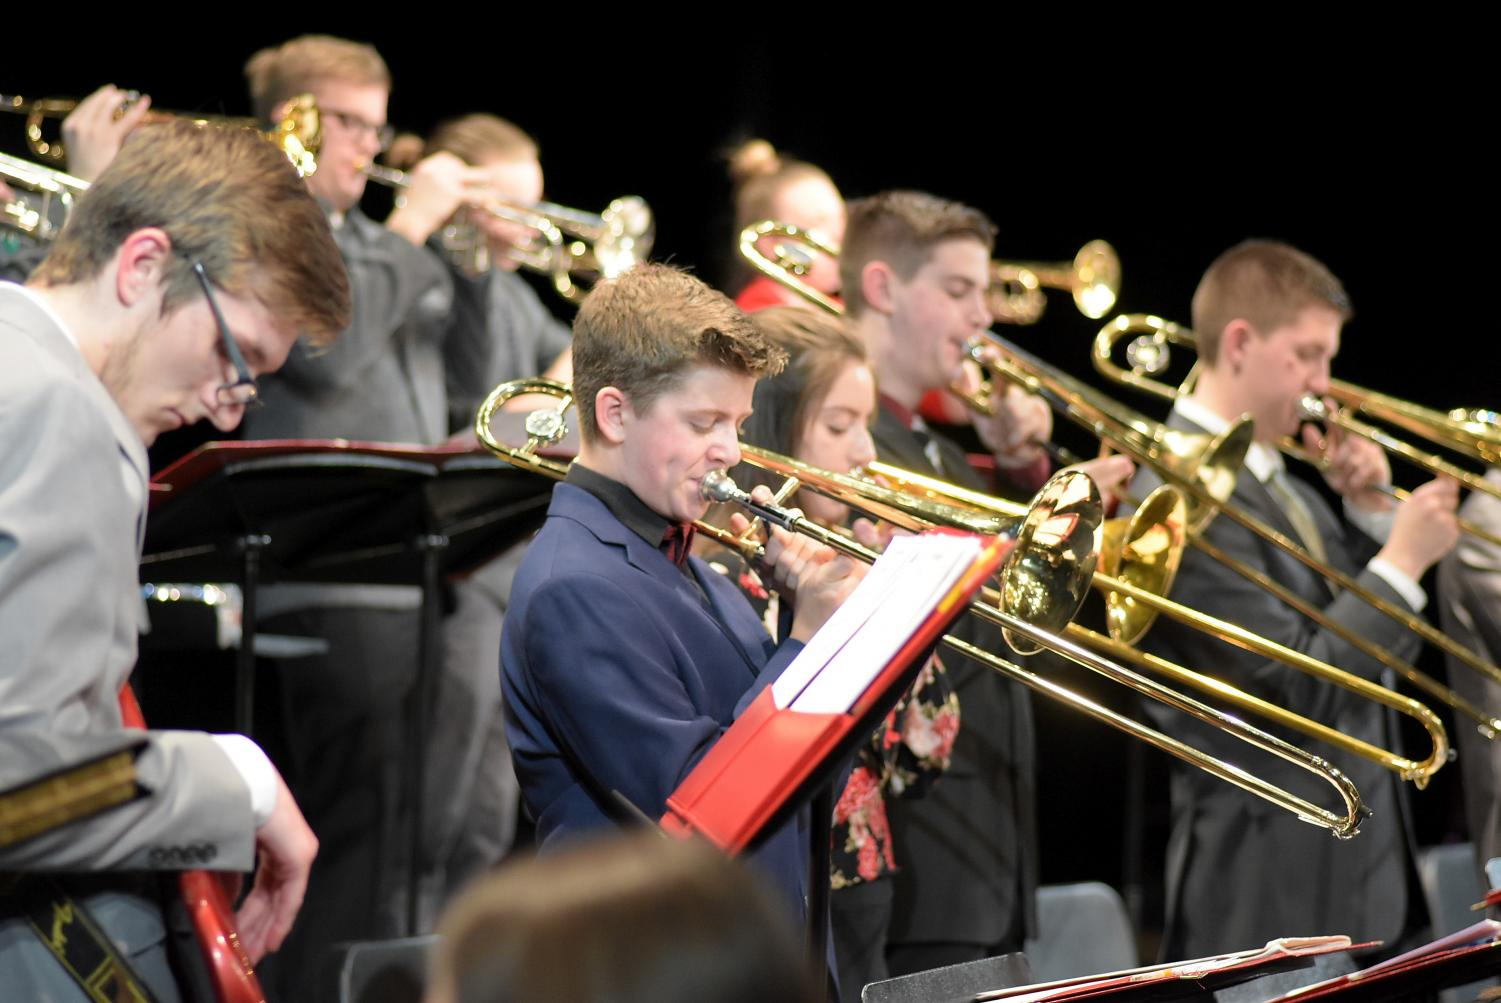 The Jazz Ensemble will be performing on March 22 for the MSBOA State Jazz Festival.